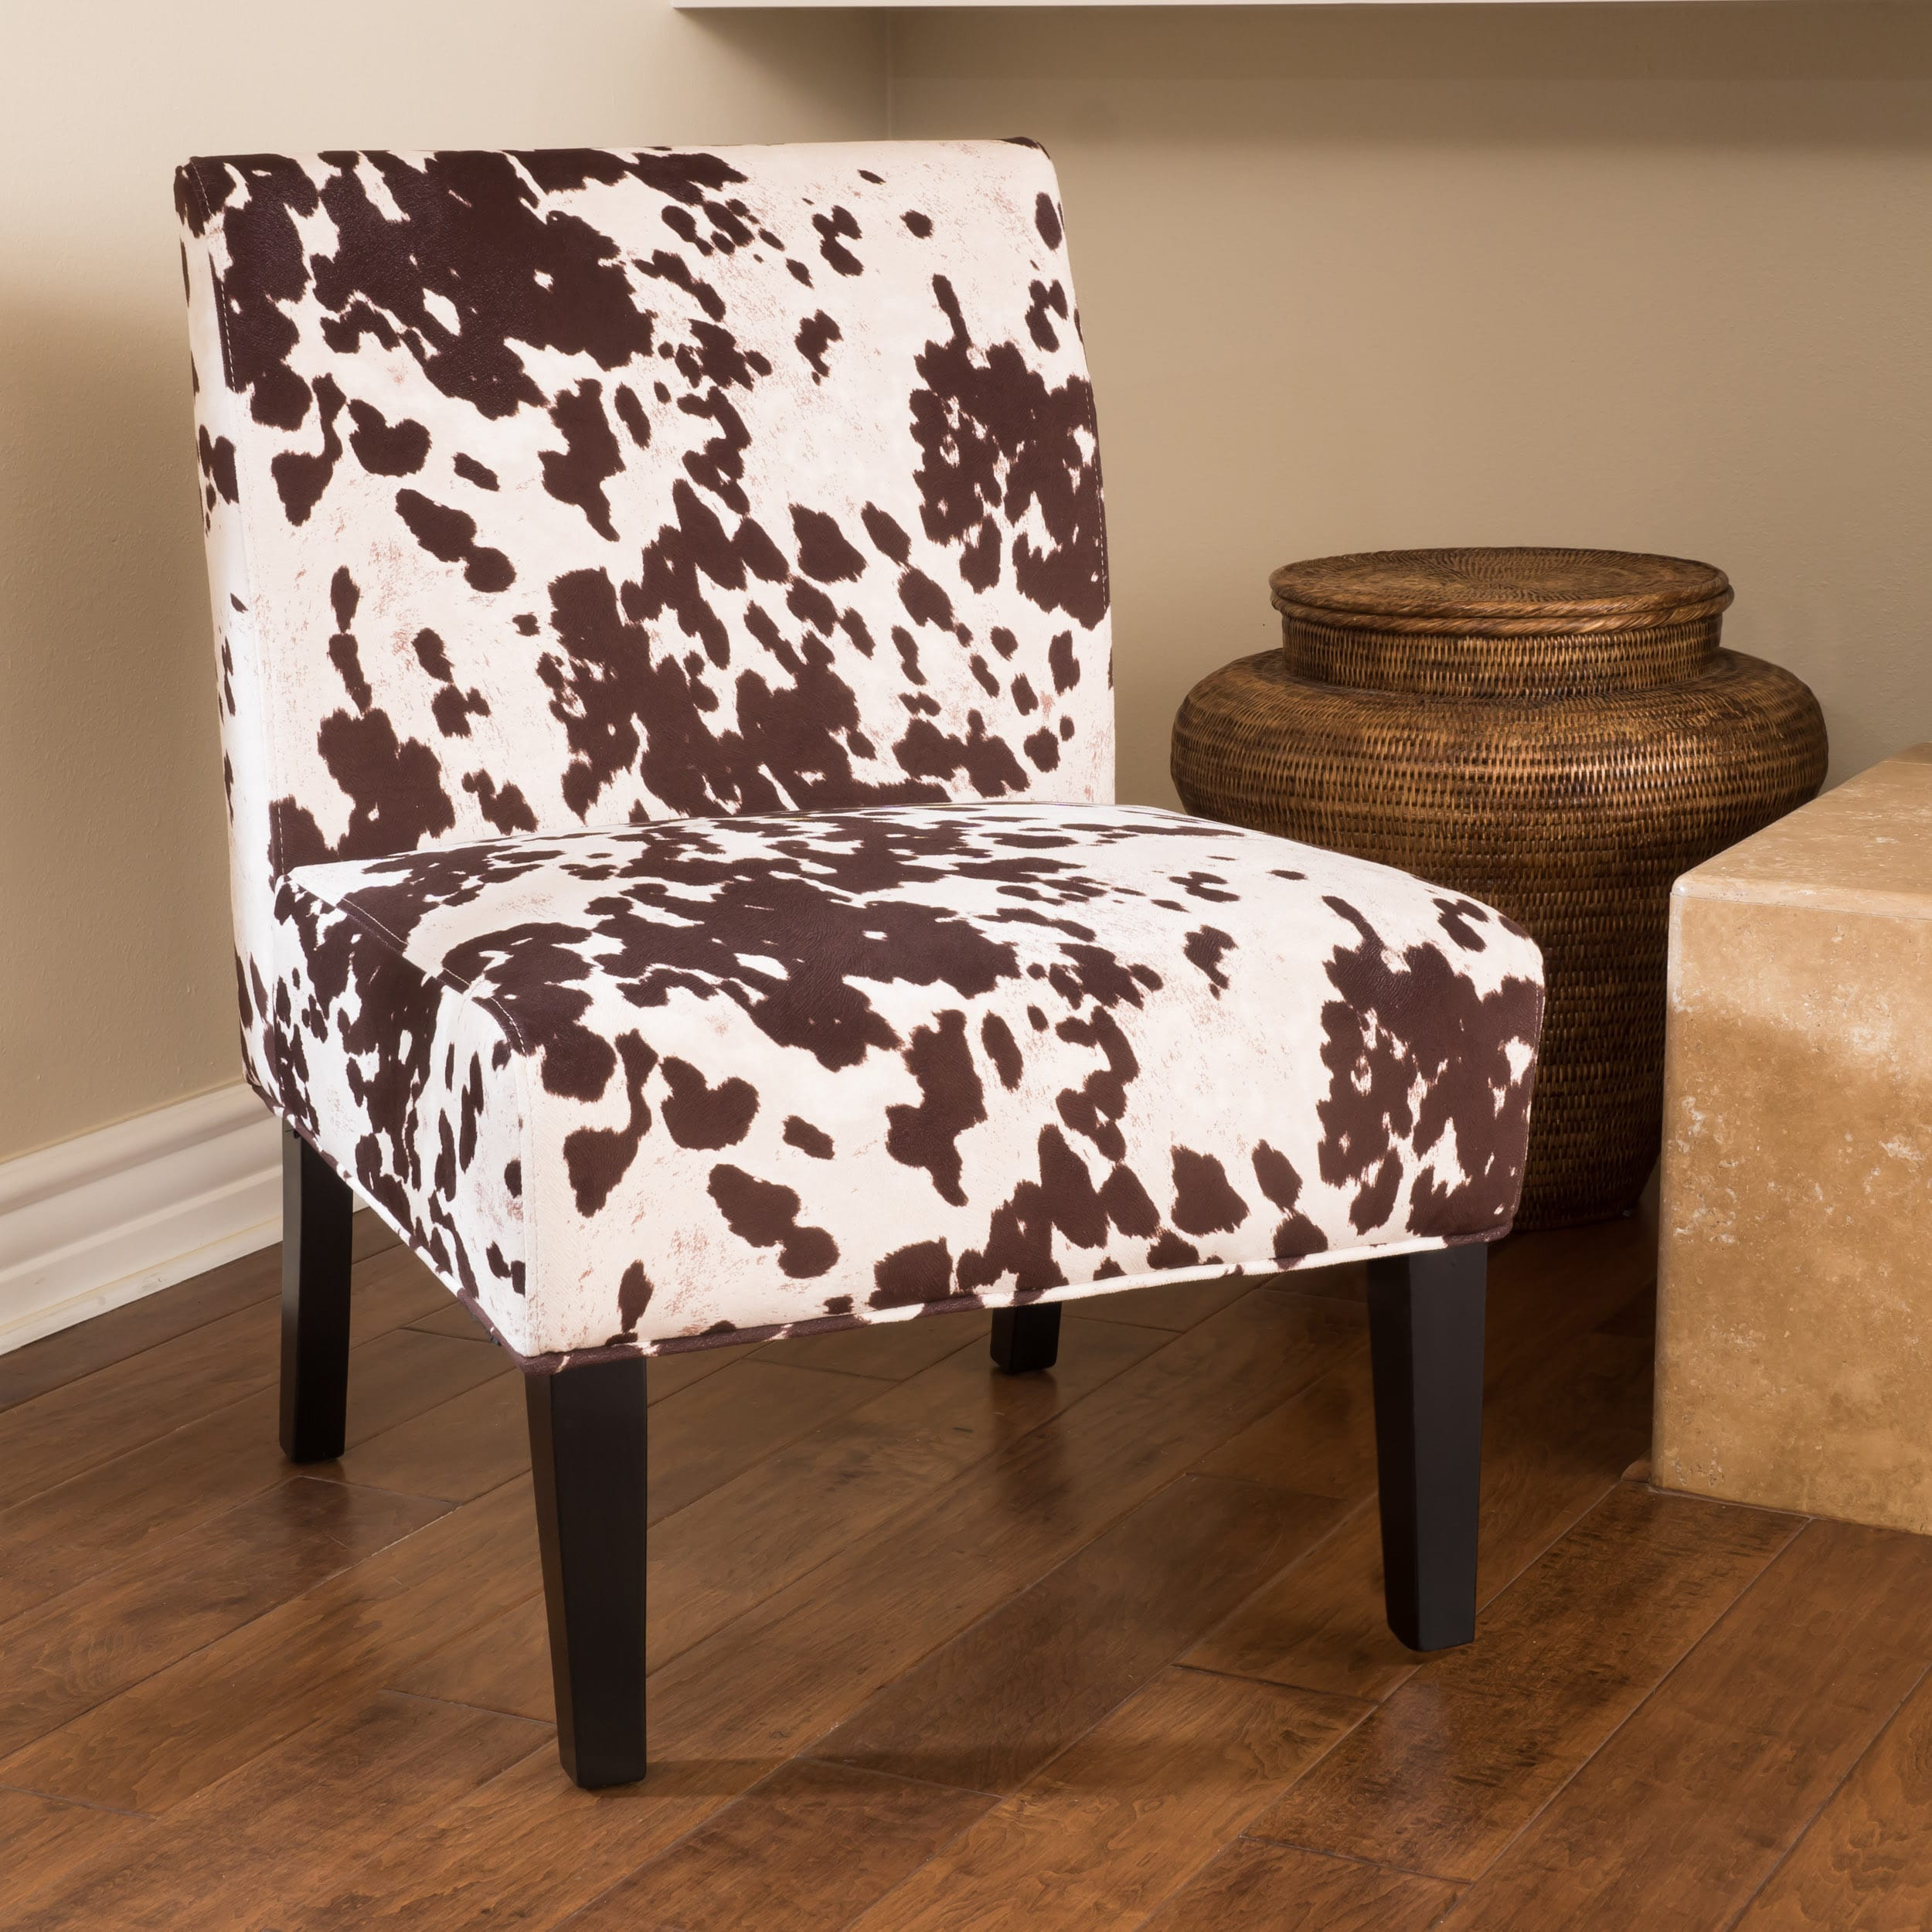 Cow Hide Chair Saloon Fabric Cowhide Print Chair Set Of 2 By Christopher Knight Home